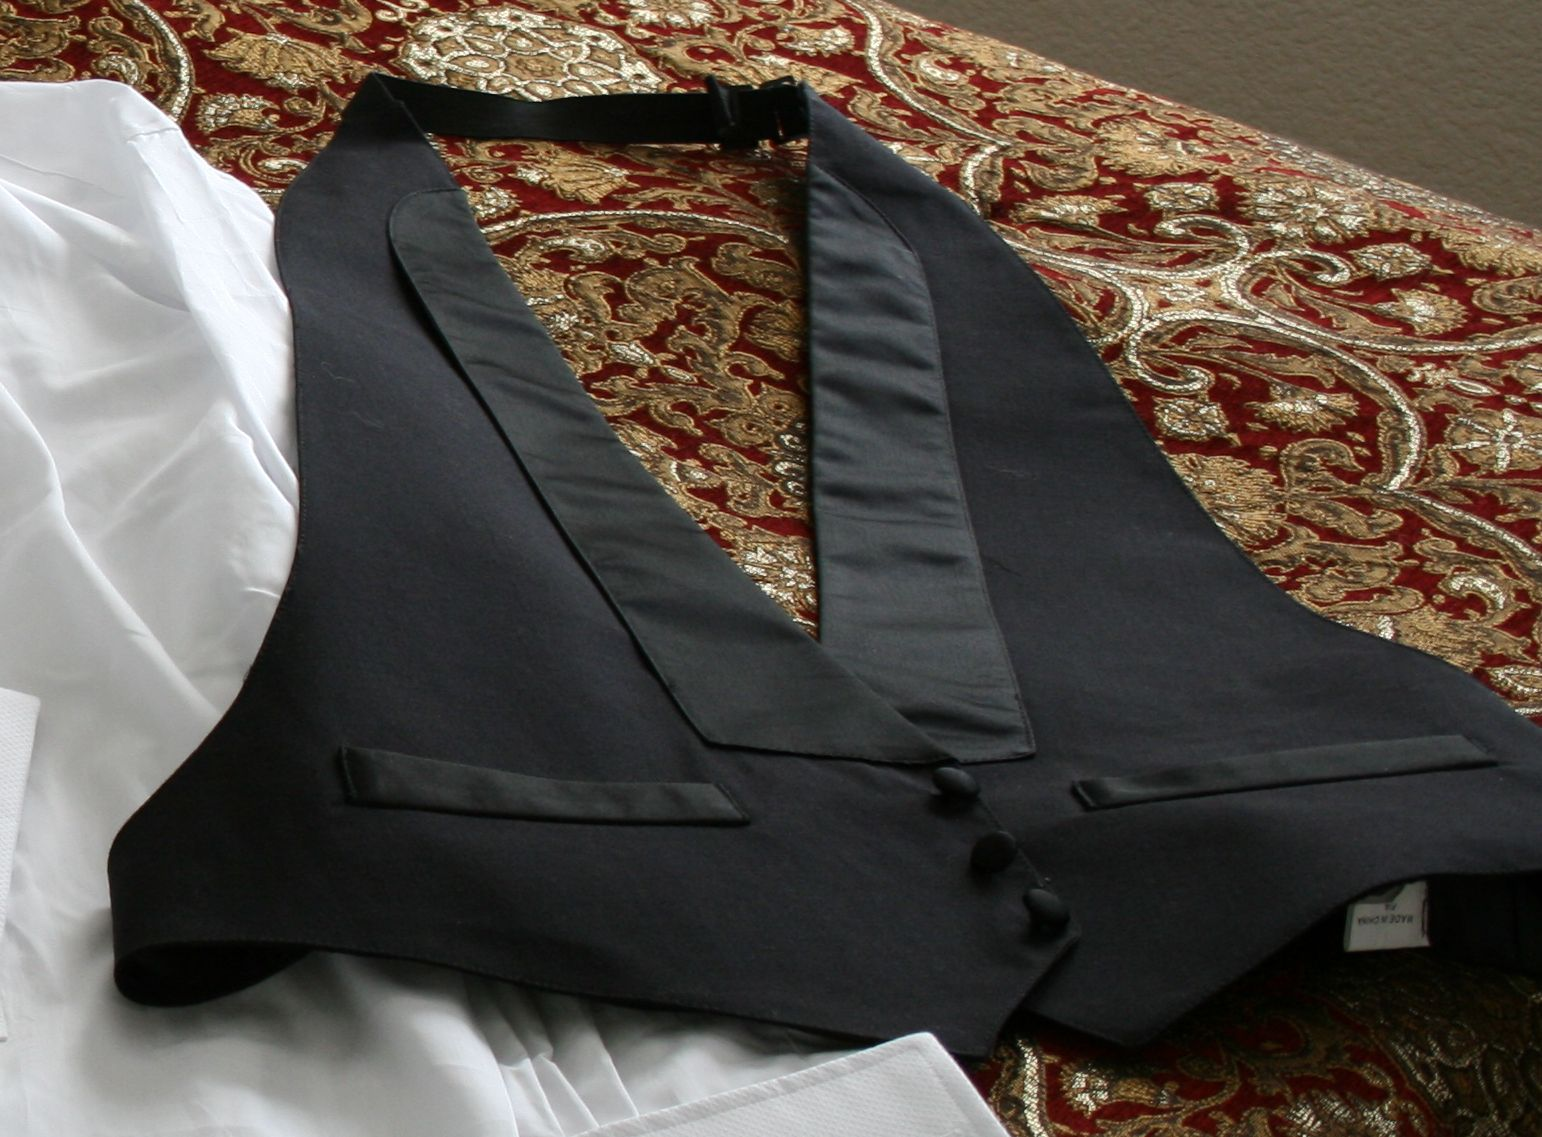 During My Extensive Search For A Waistcoat I Found Several Beautiful  Examples From British Clothiers But They Were Typically £160 To £200 Which  Is About